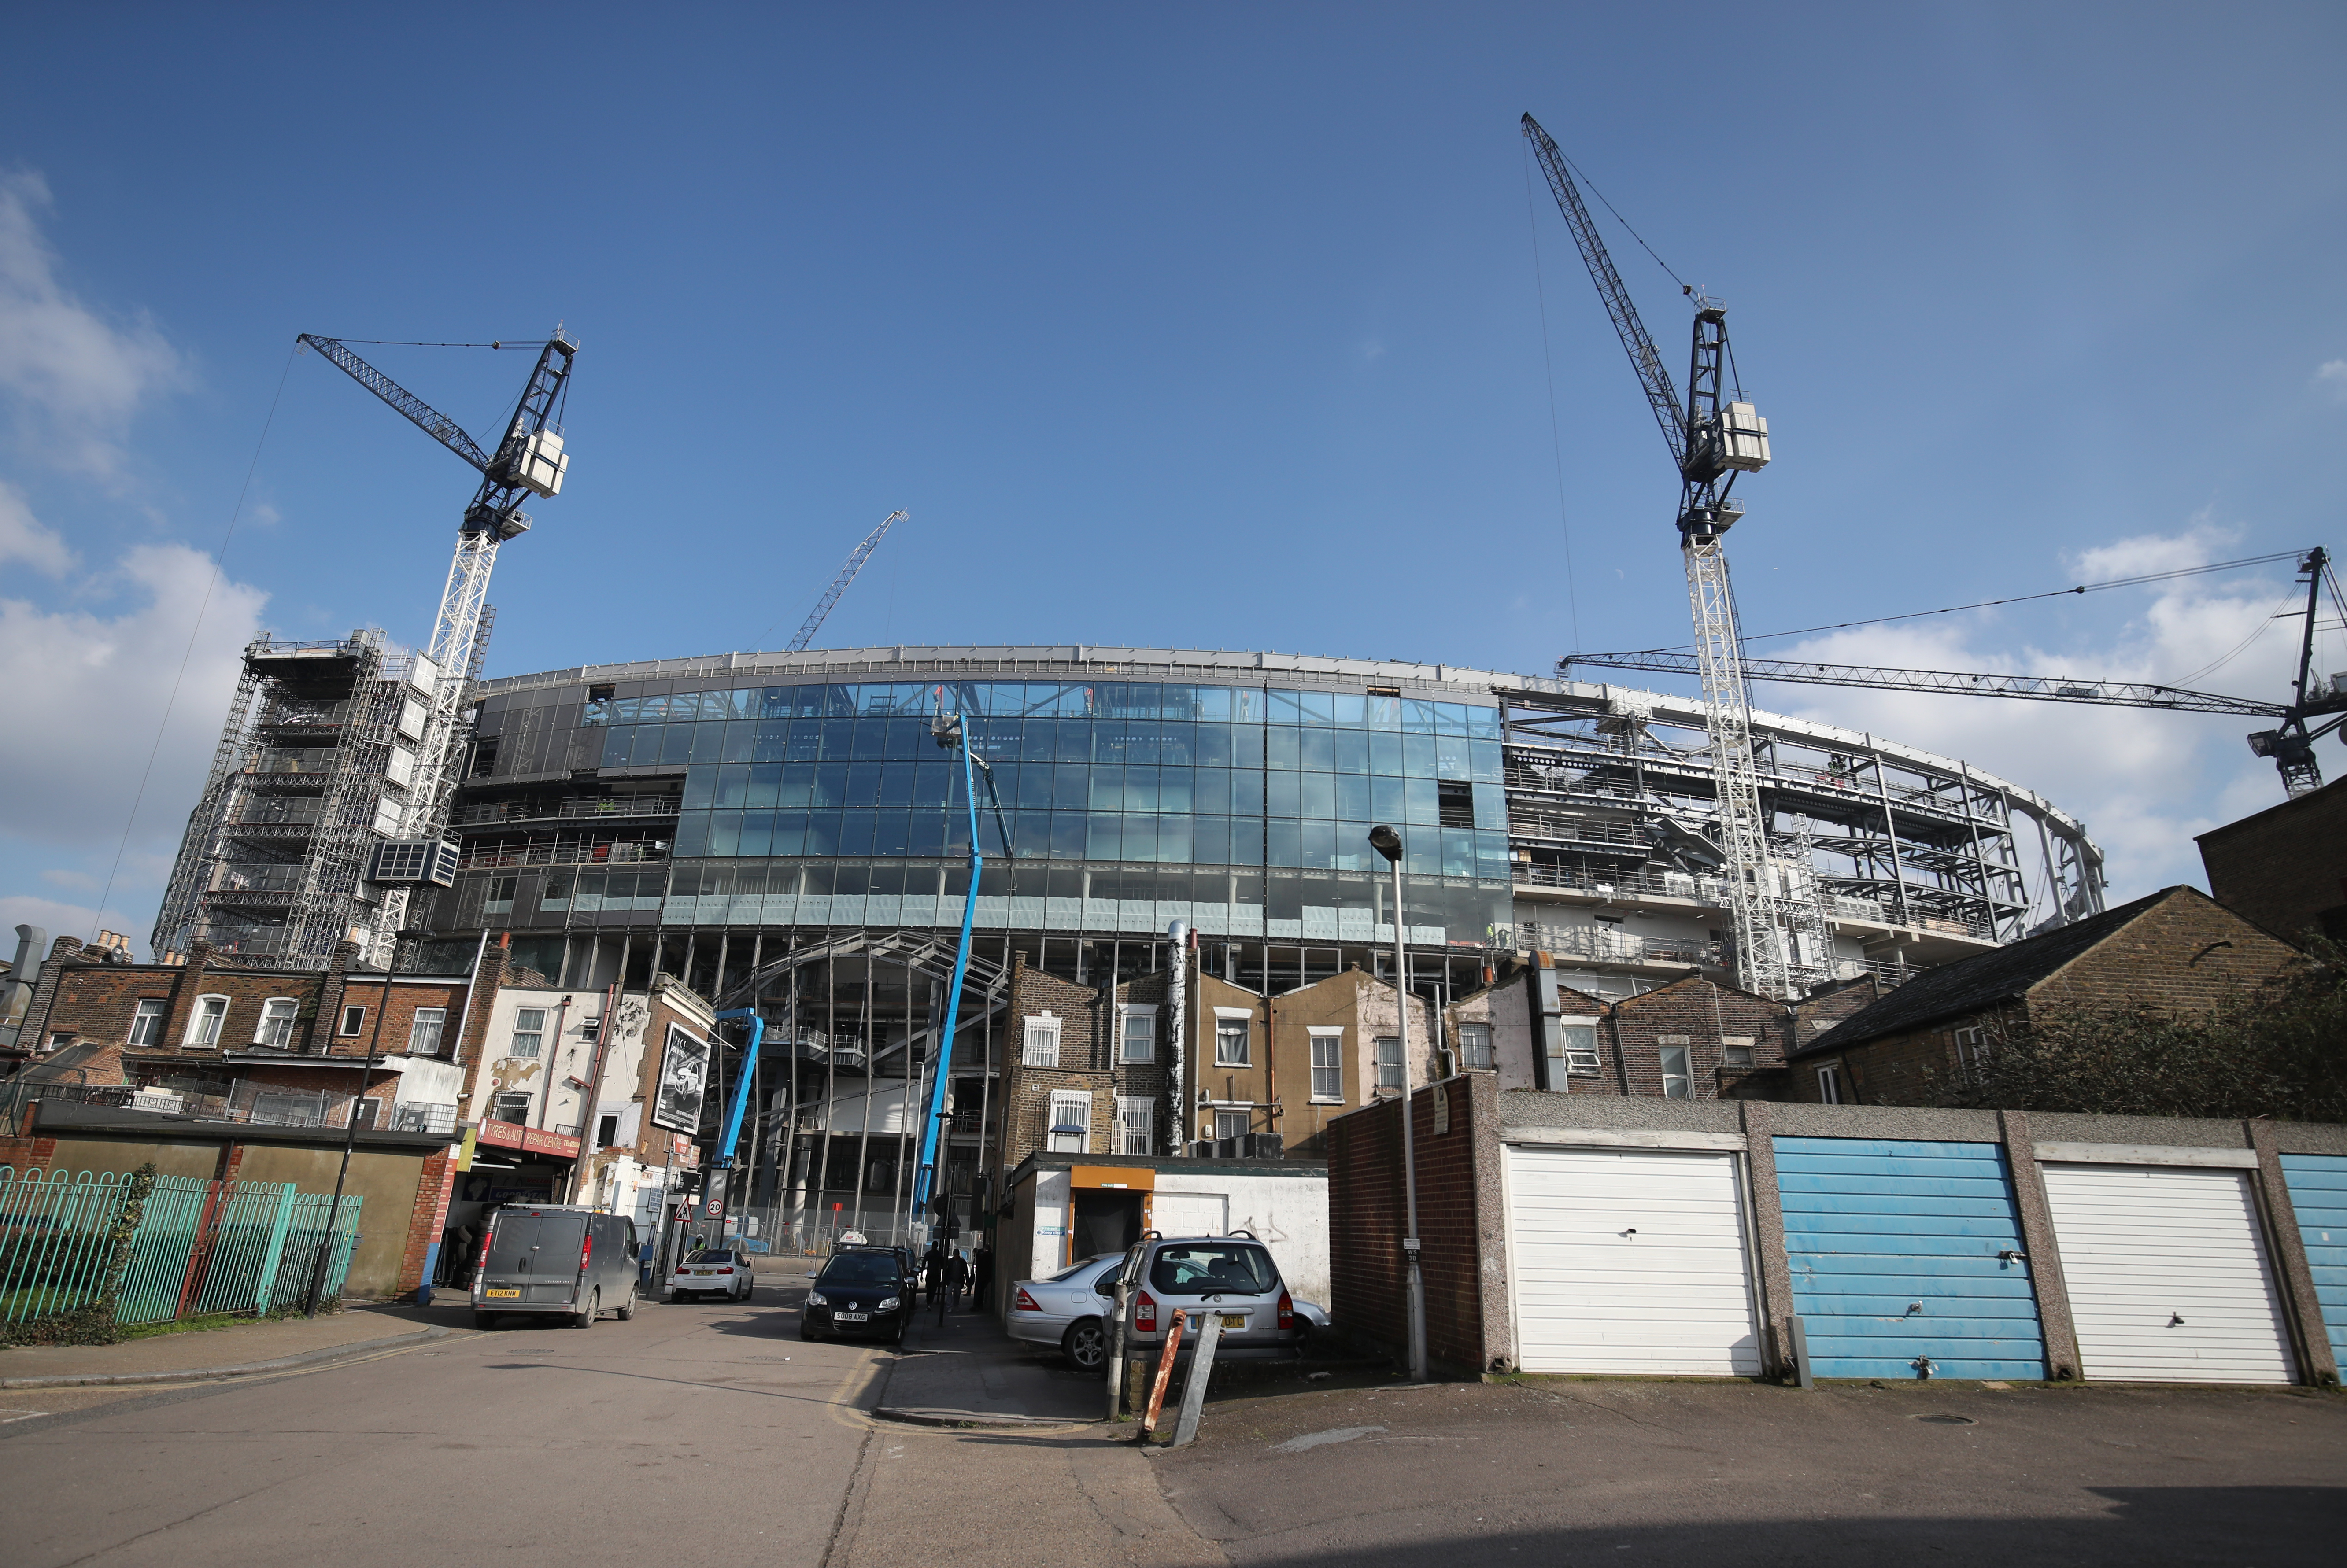 The new ground still had a lot of work to do back in January. Image: PA Images